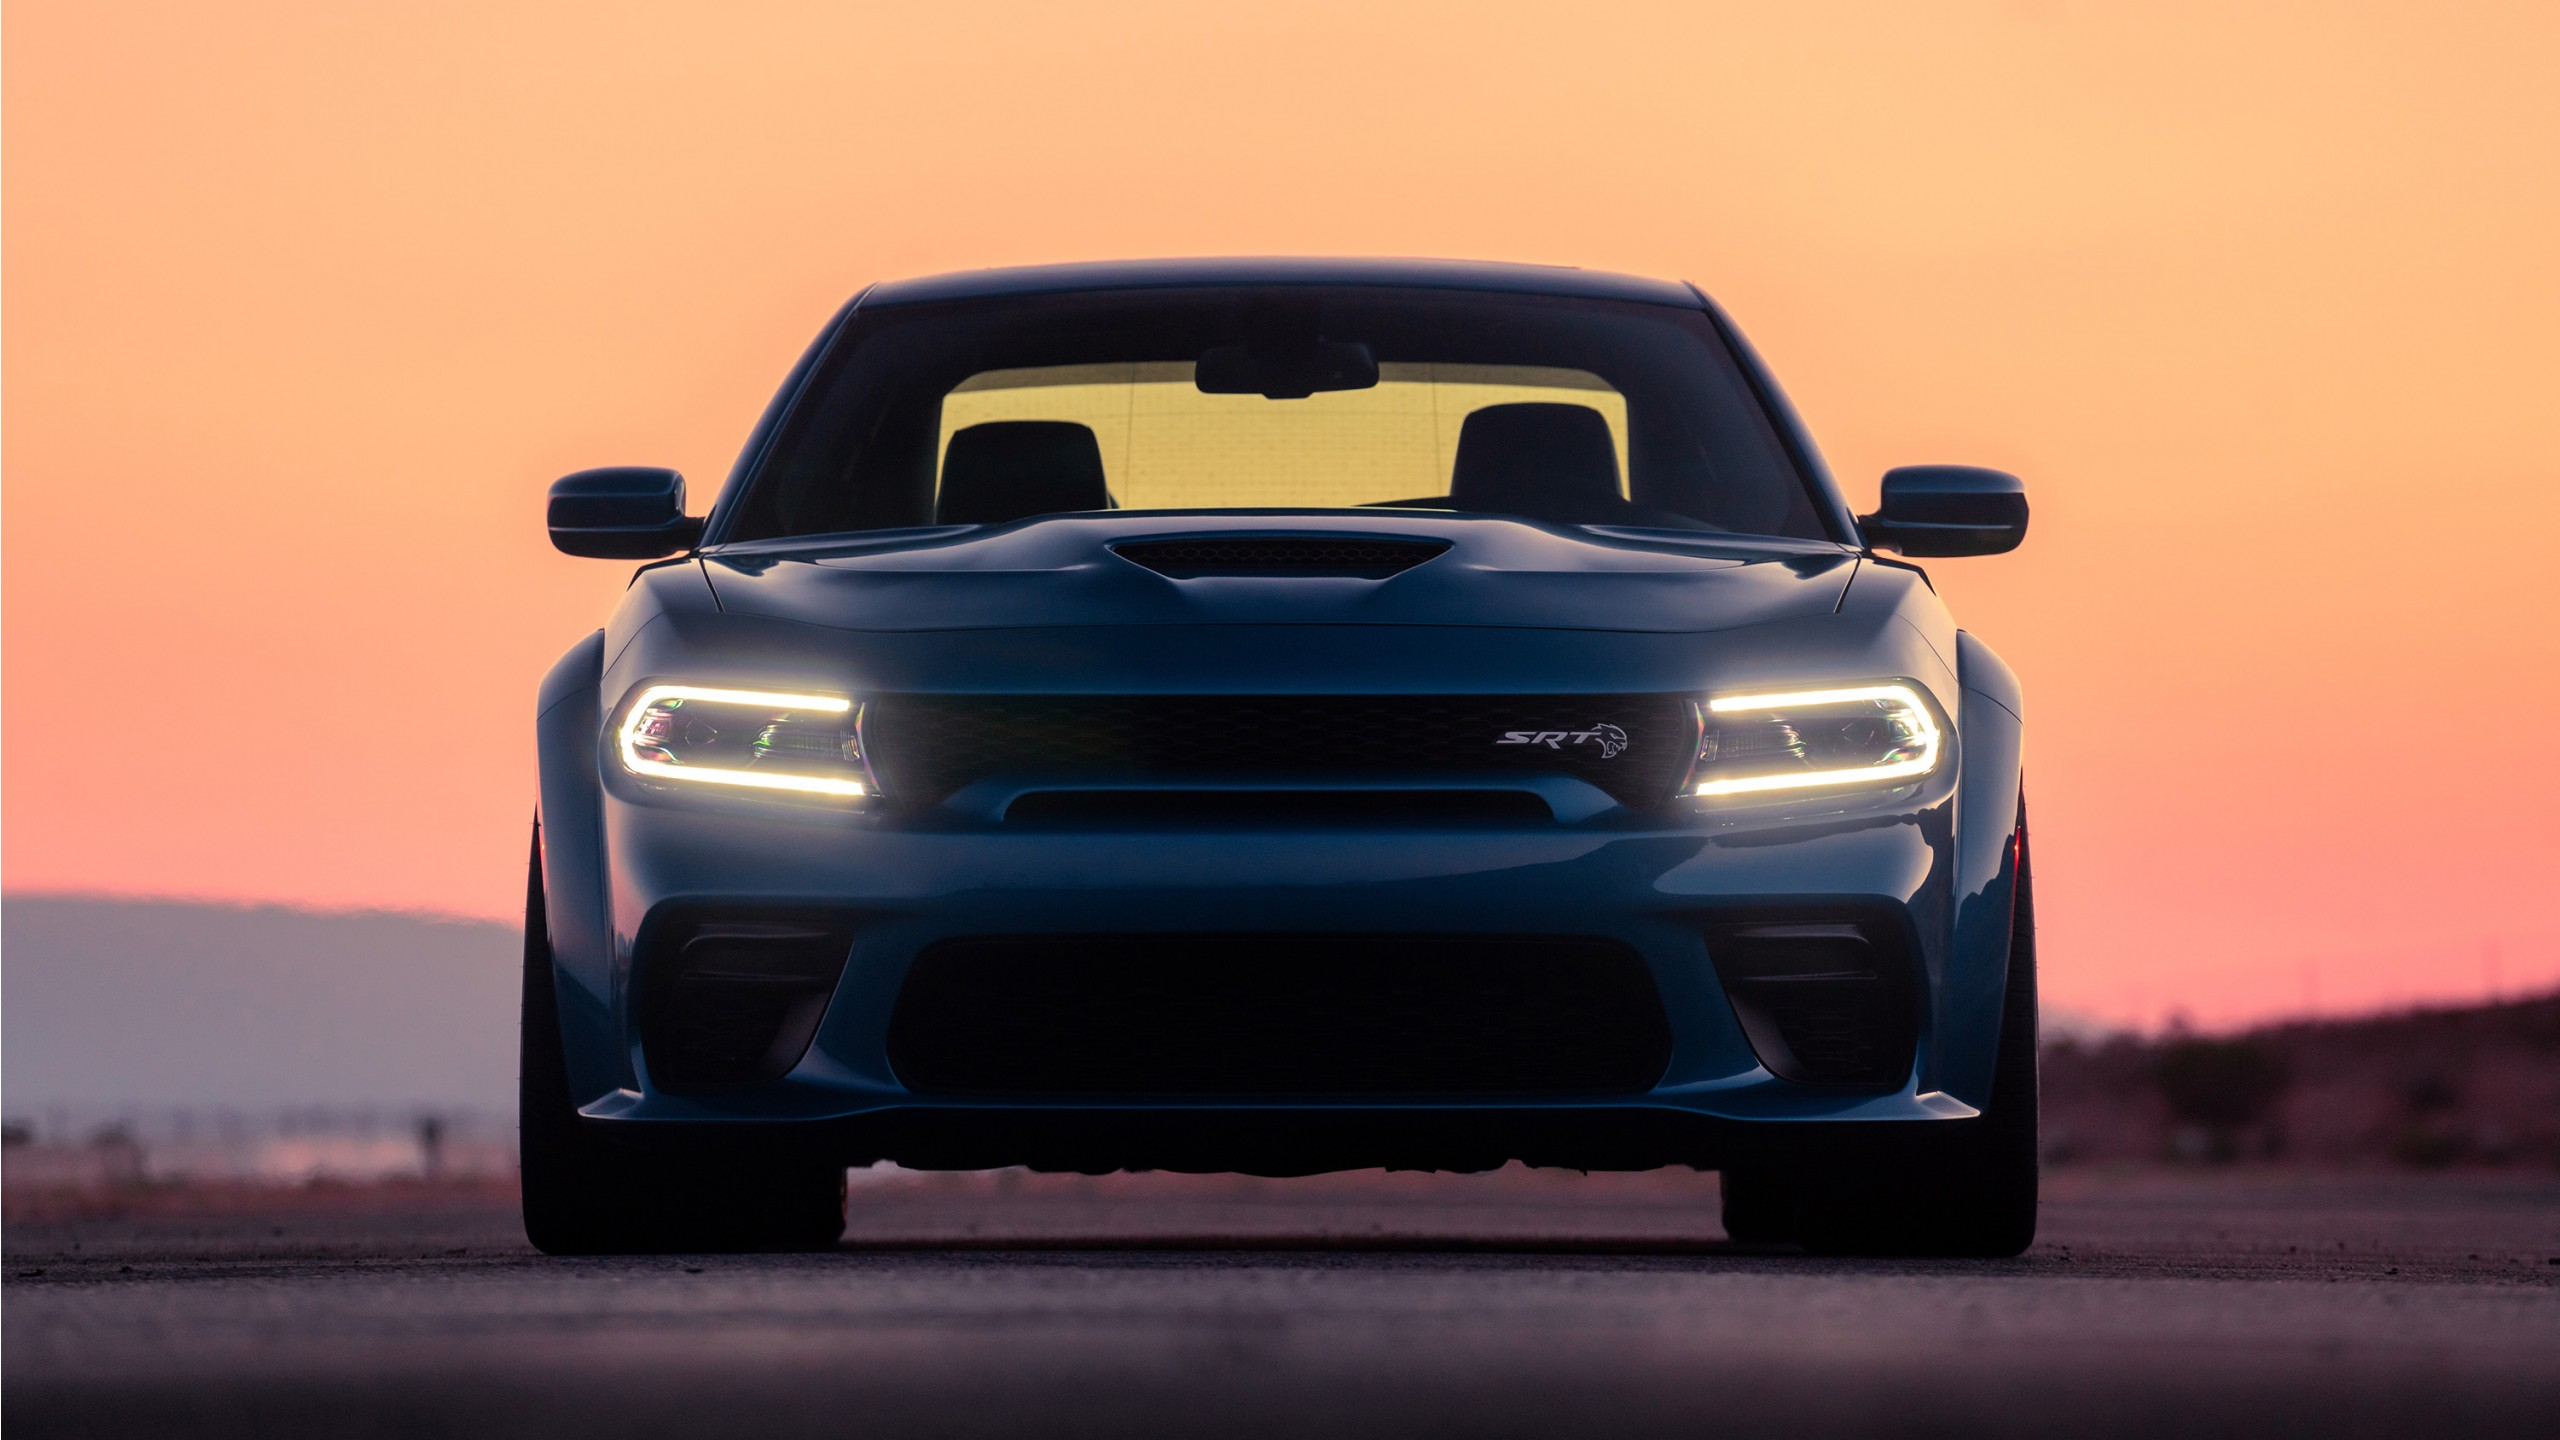 2020 Dodge Charger SRT Hellcat Widebody 3 Wallpaper | HD ...